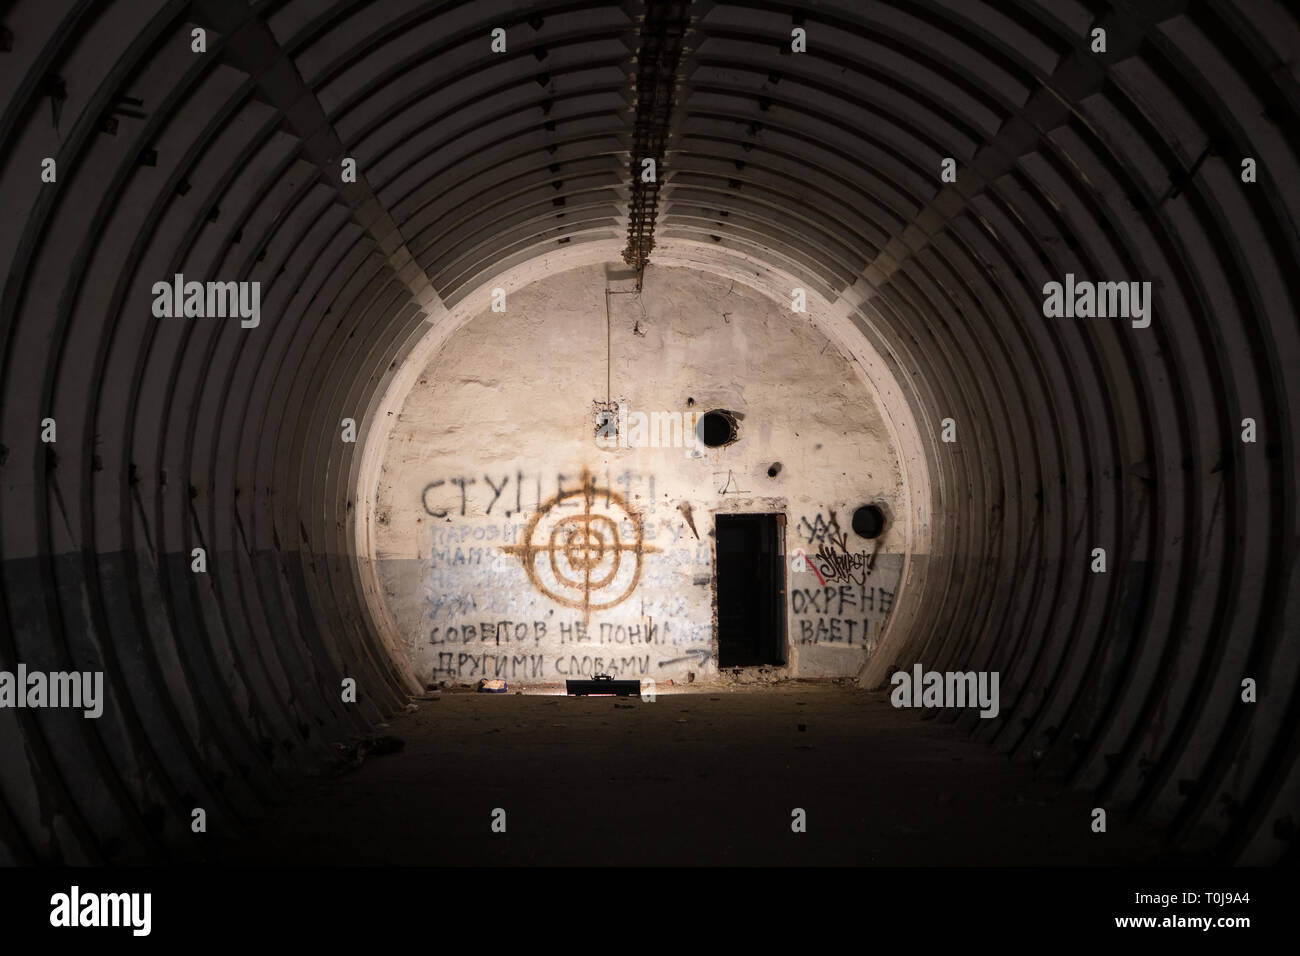 Abandoned ballistic missile bunker with graffiti and painted target, legacy of the Cold War - Stock Image